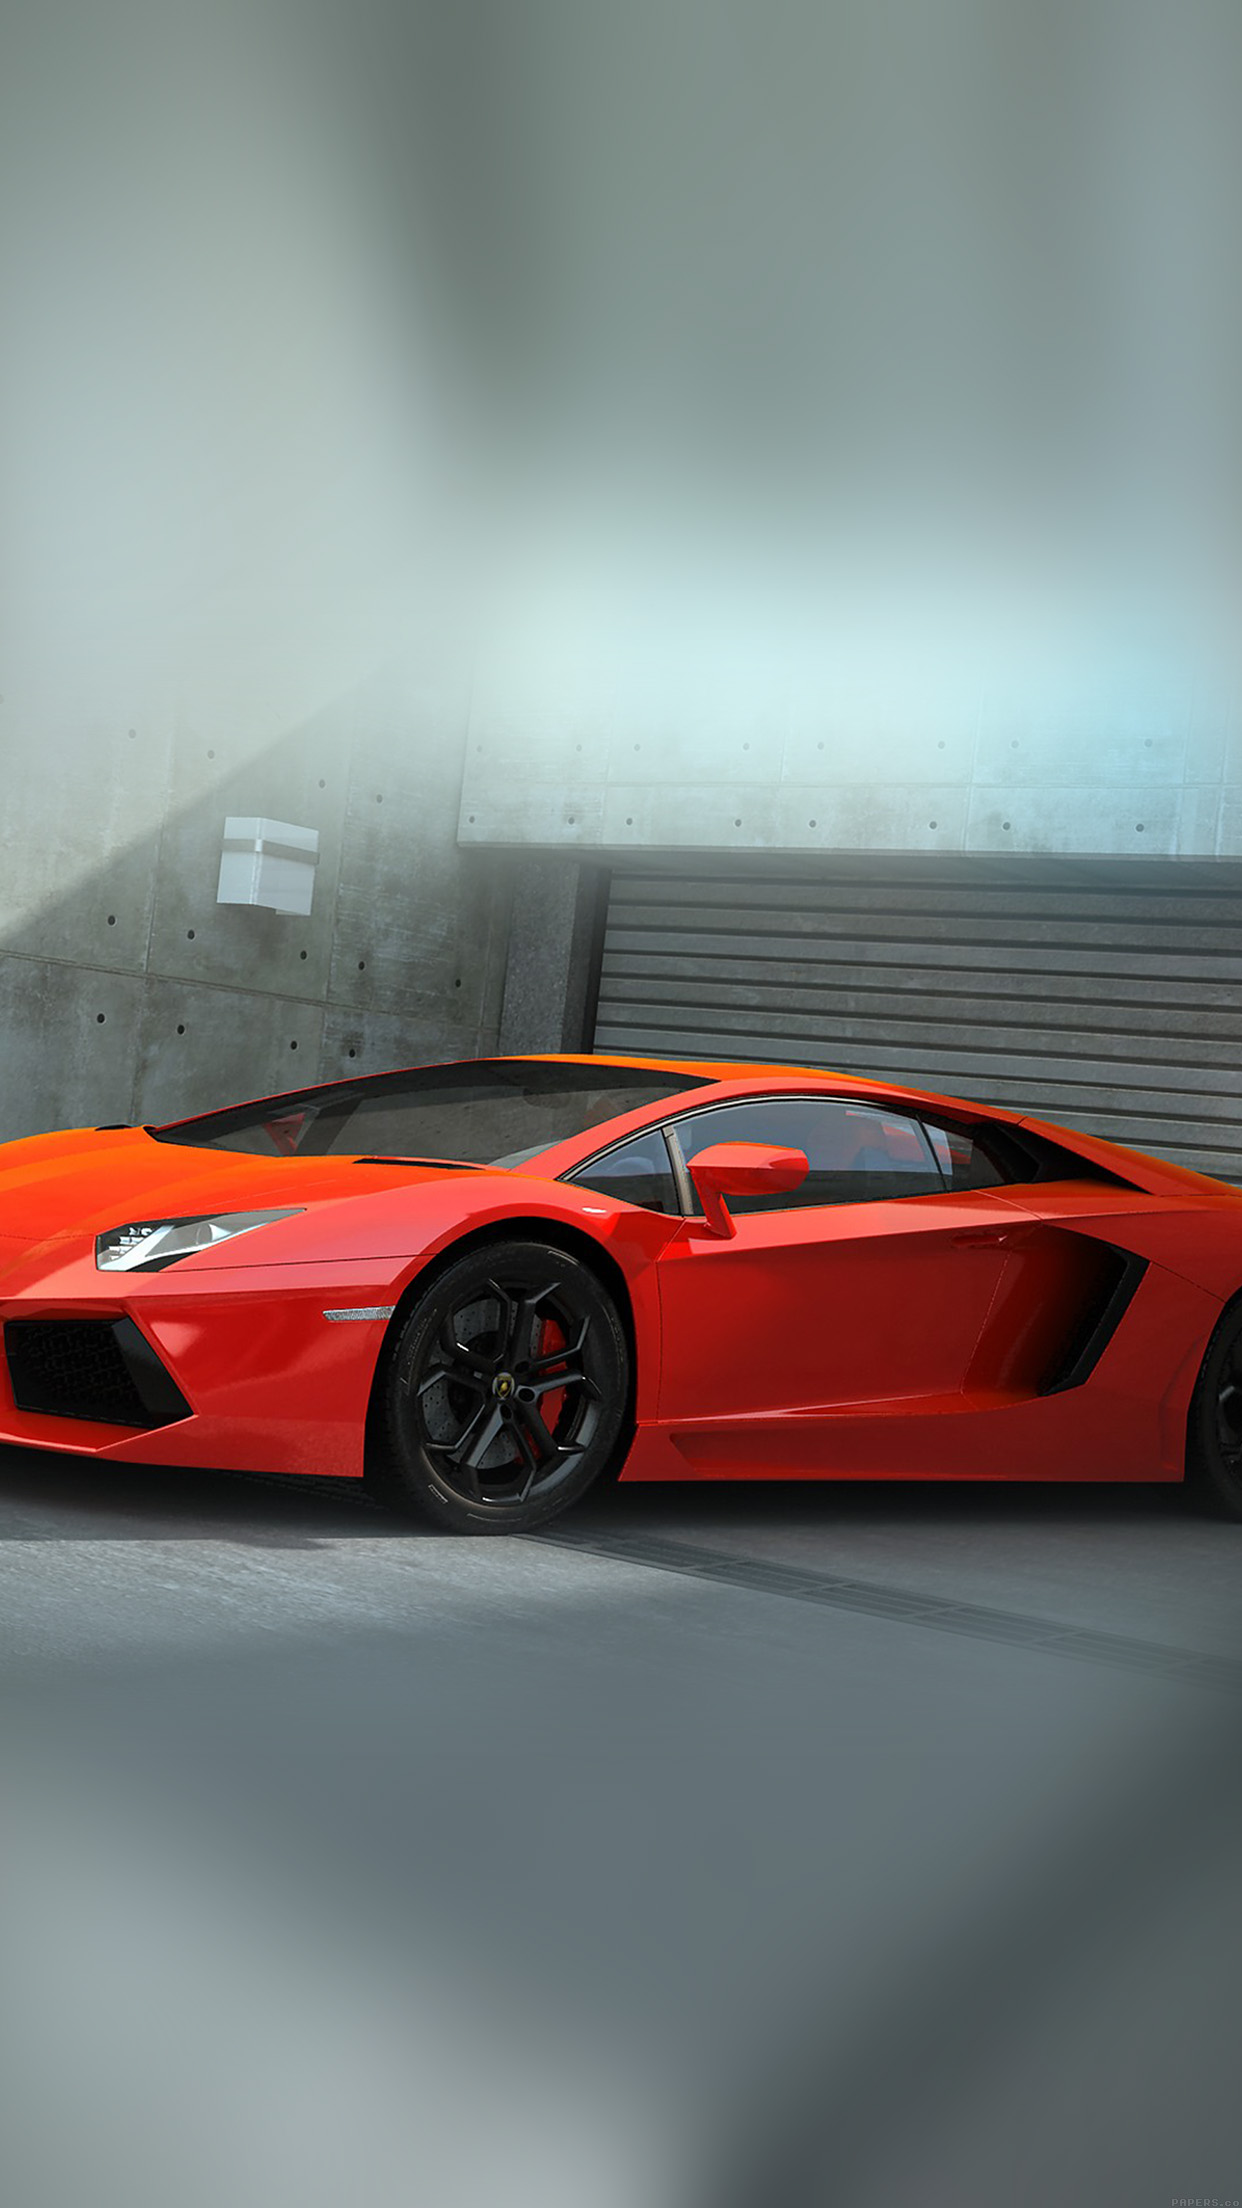 Iphone6papers Ai89 Red Lamborghini Parked Car Art